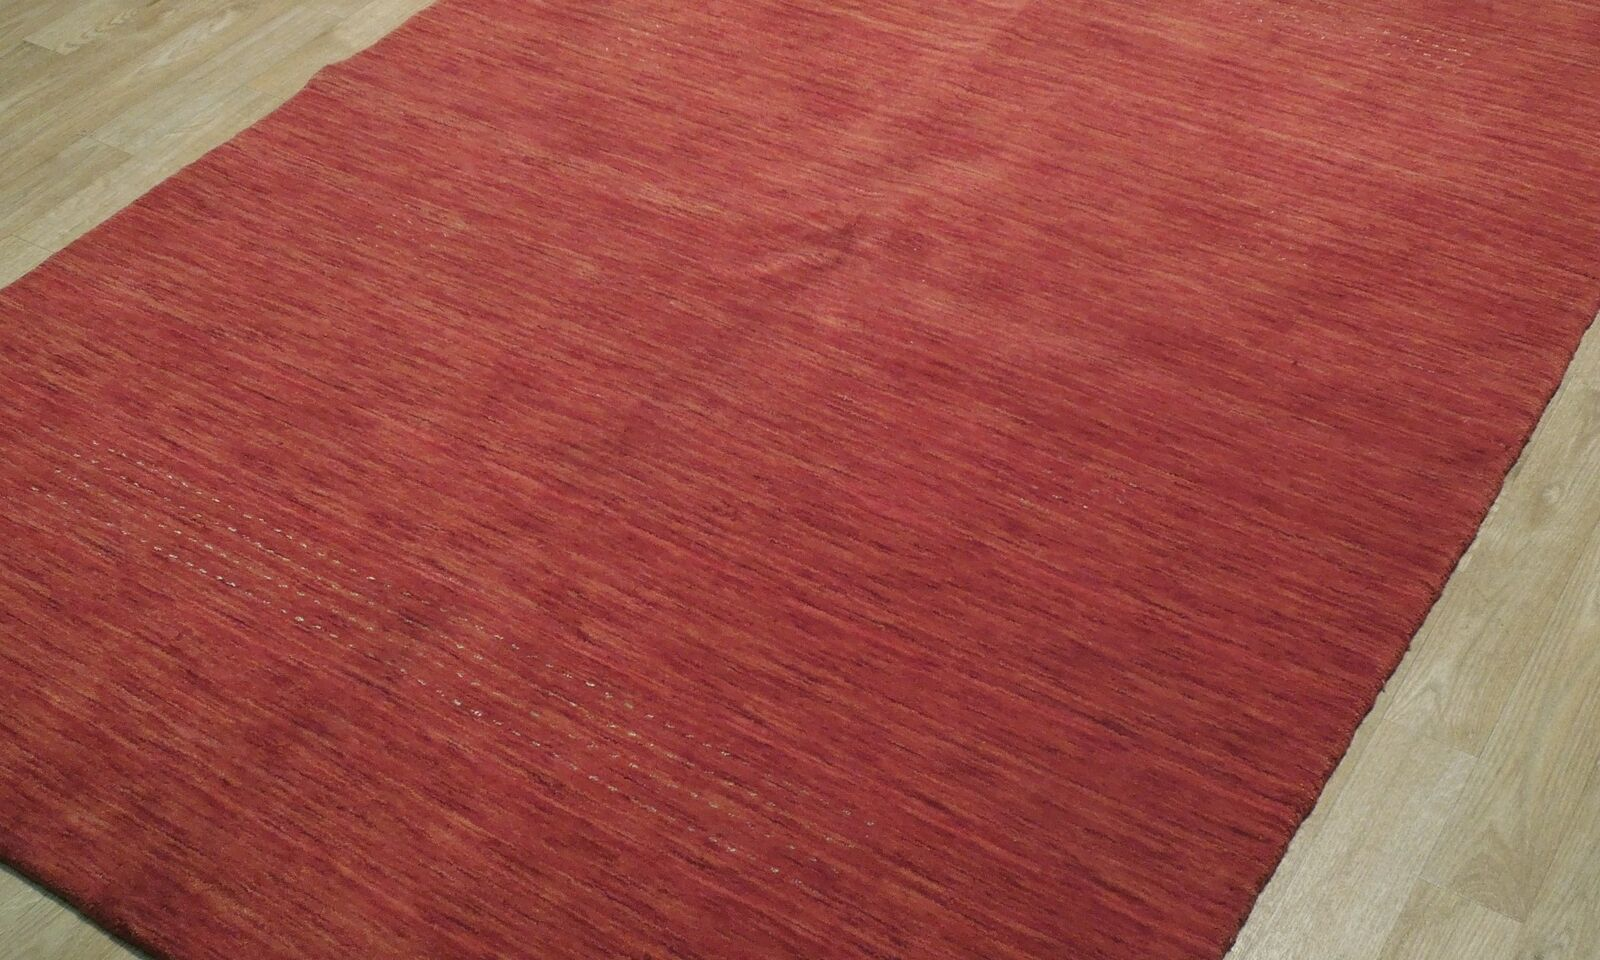 5' x 7' Shades of Red Soft Modern Red Gabbeh Wool Hand-Knotted Rug image 10